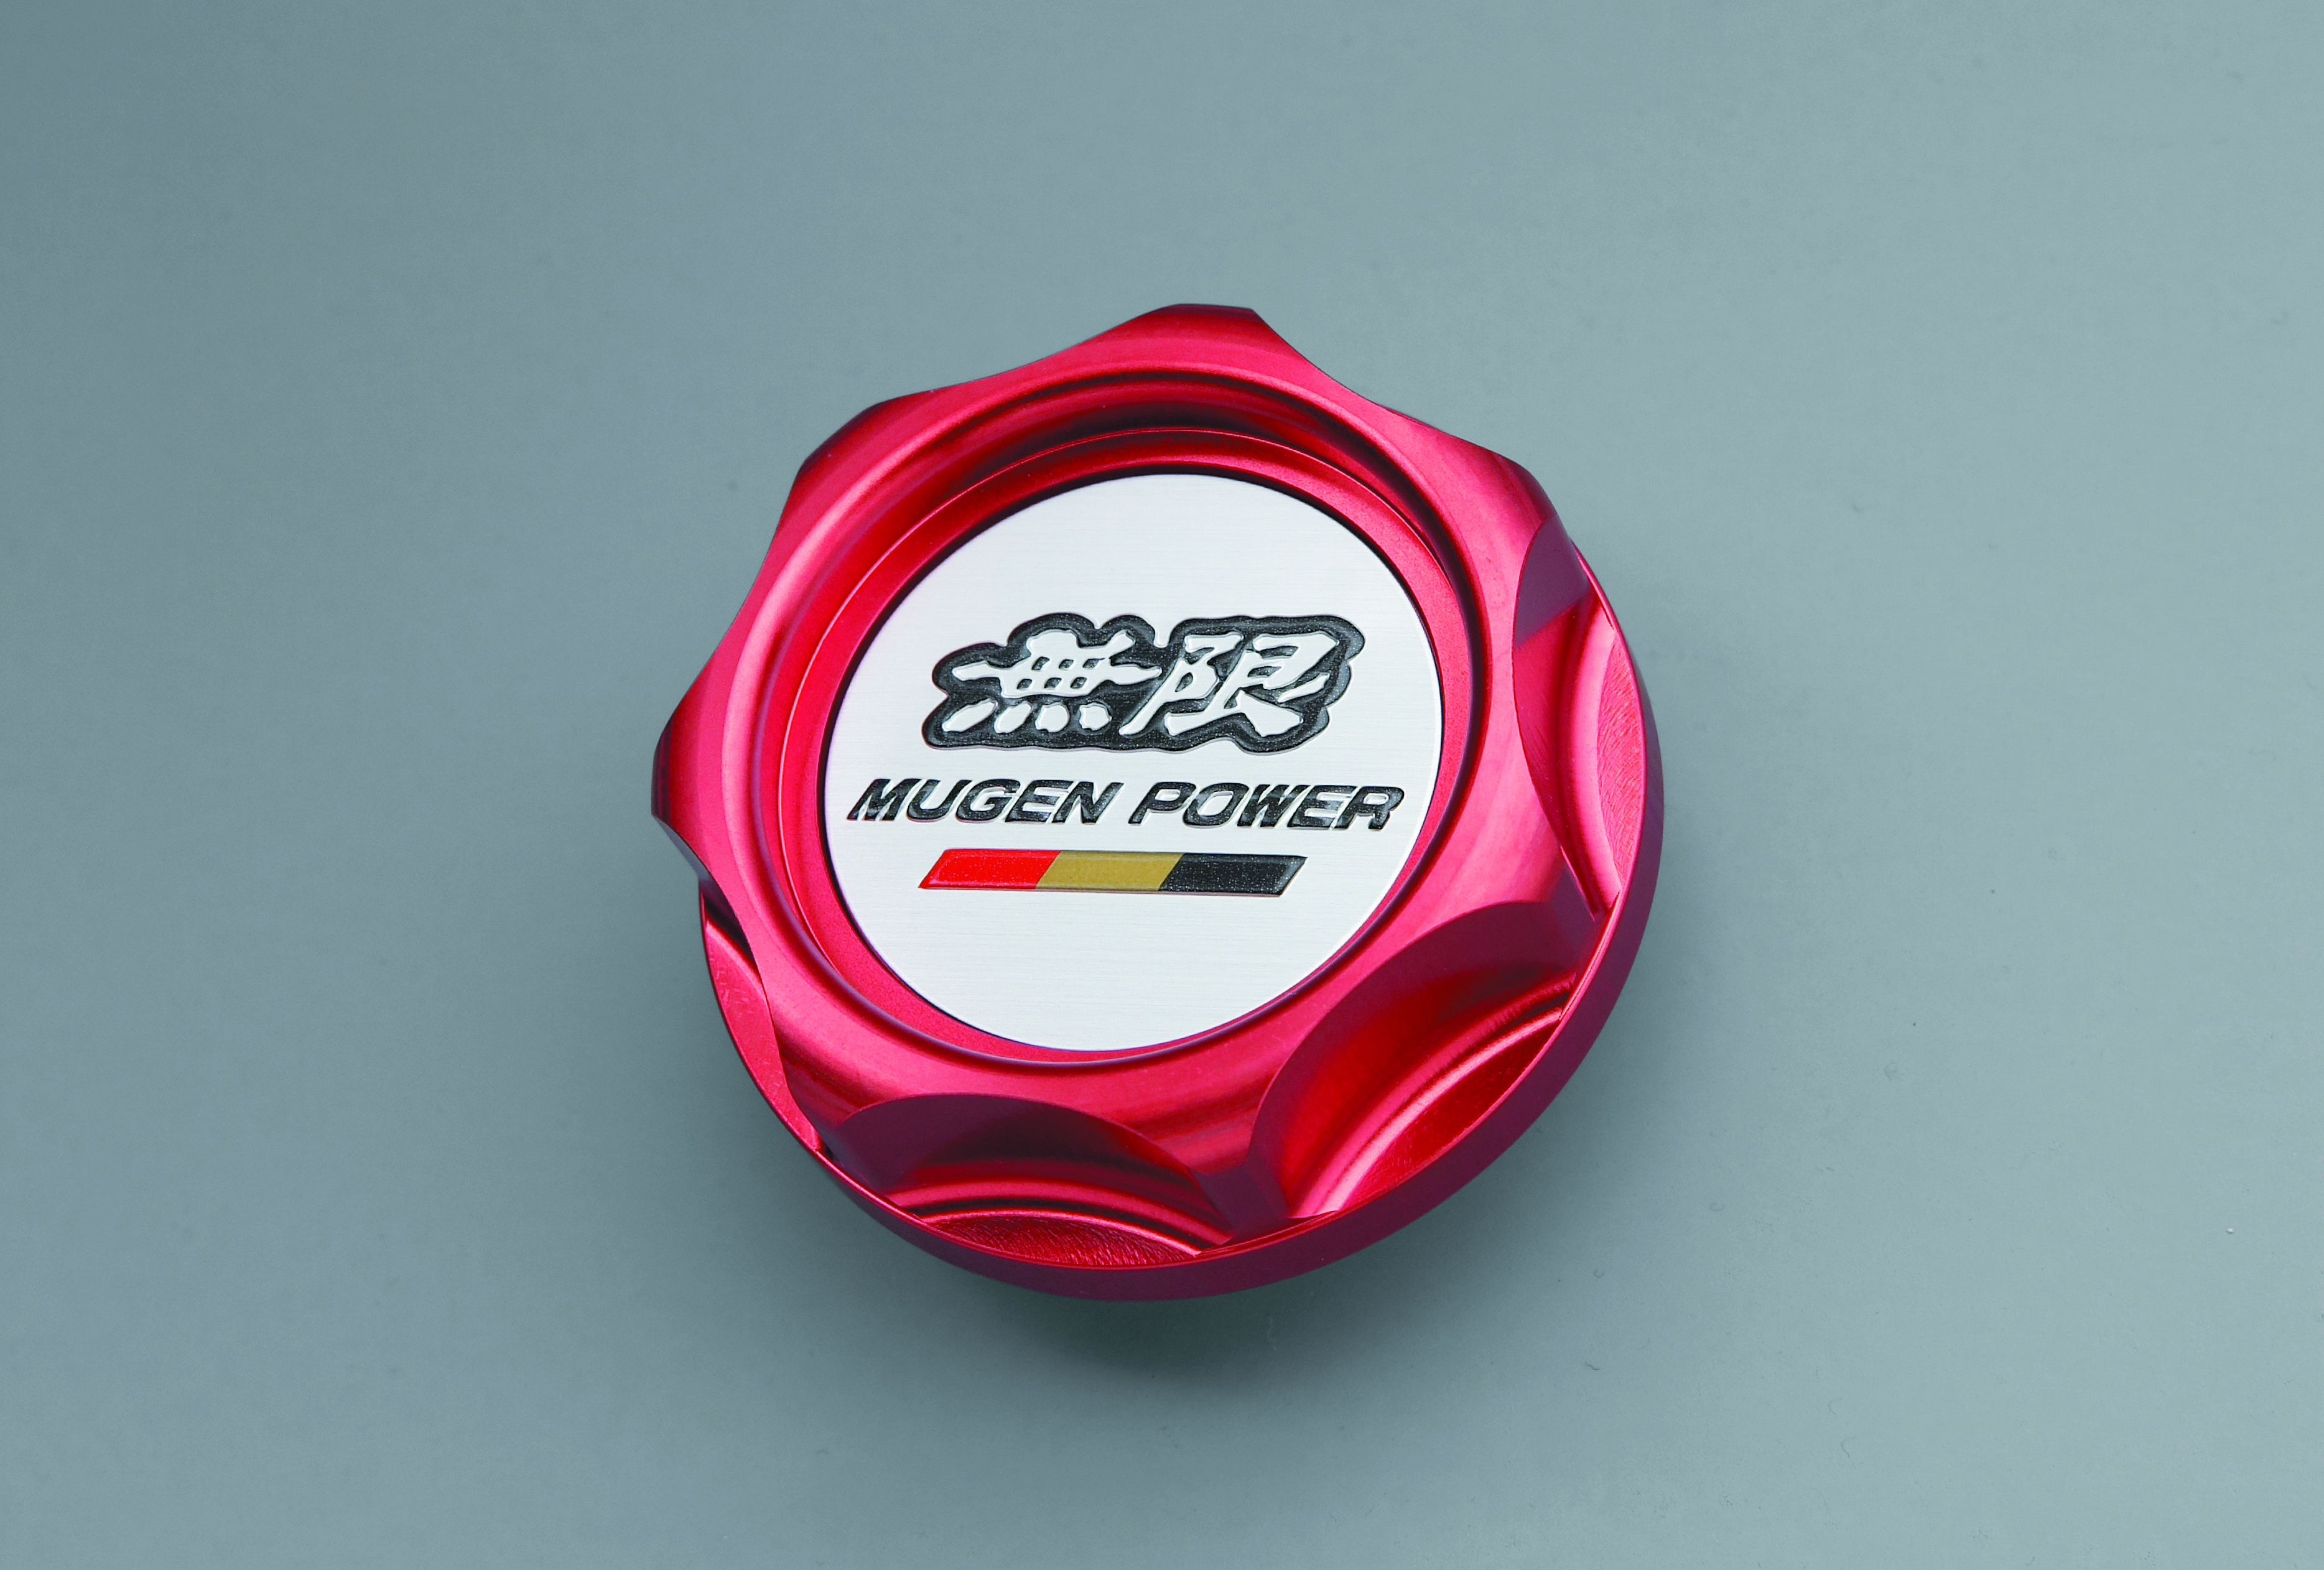 Honda Civic Type R's FN2 MUGEN alloy oil filler cap